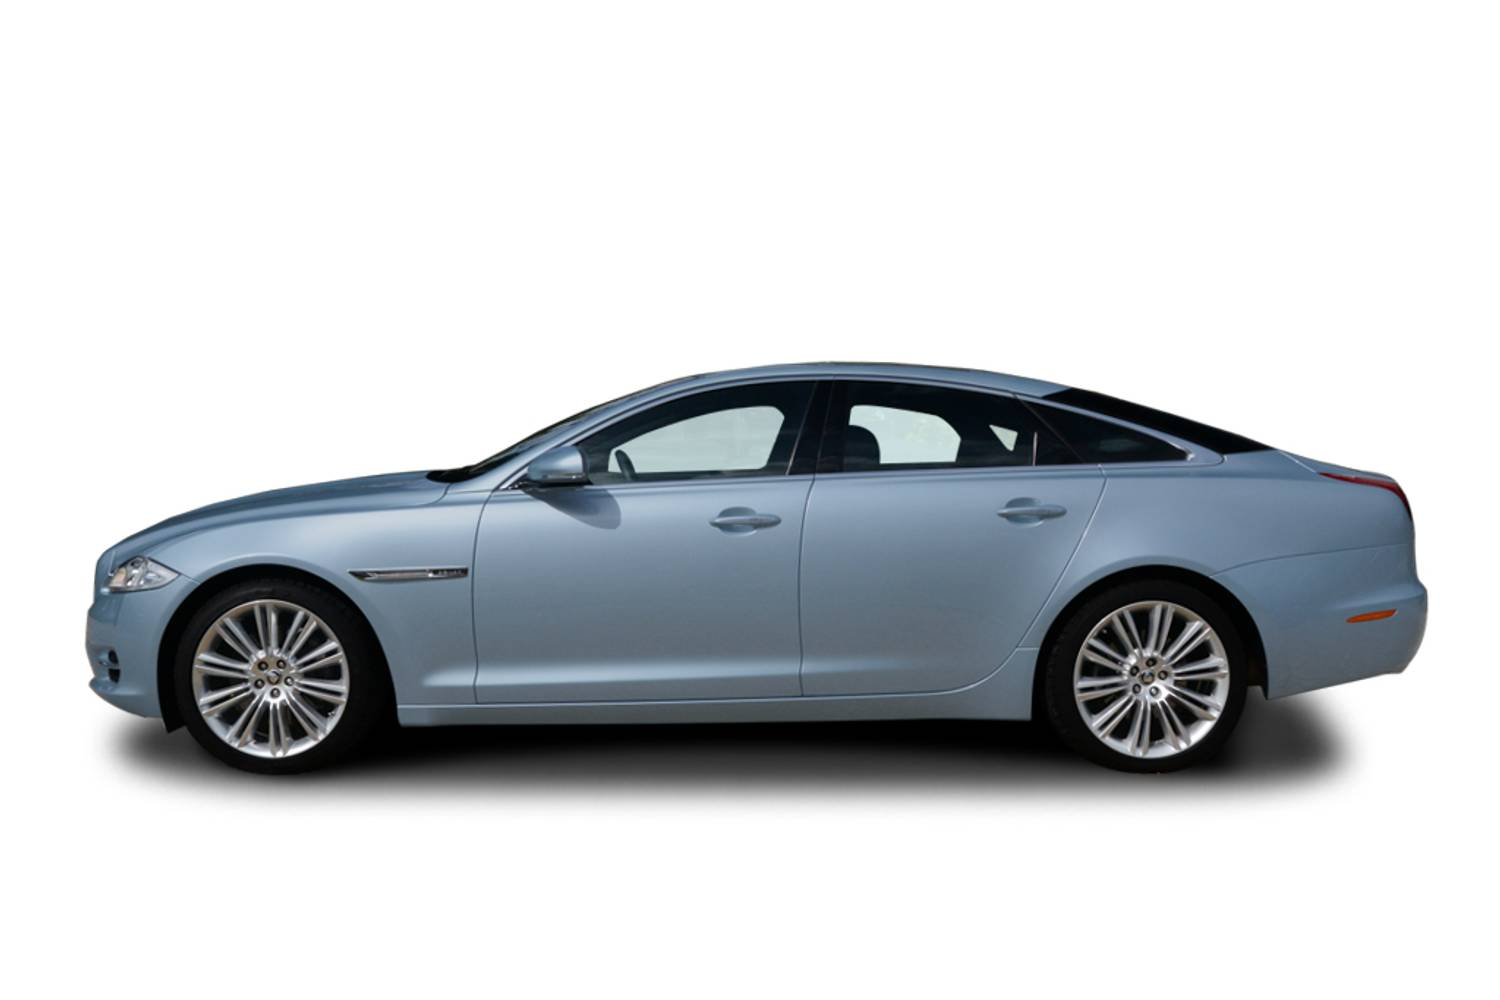 new jaguar xj saloon 5 0 575 ps v8 supercharged xjr 4 door auto 2017 for sale. Black Bedroom Furniture Sets. Home Design Ideas